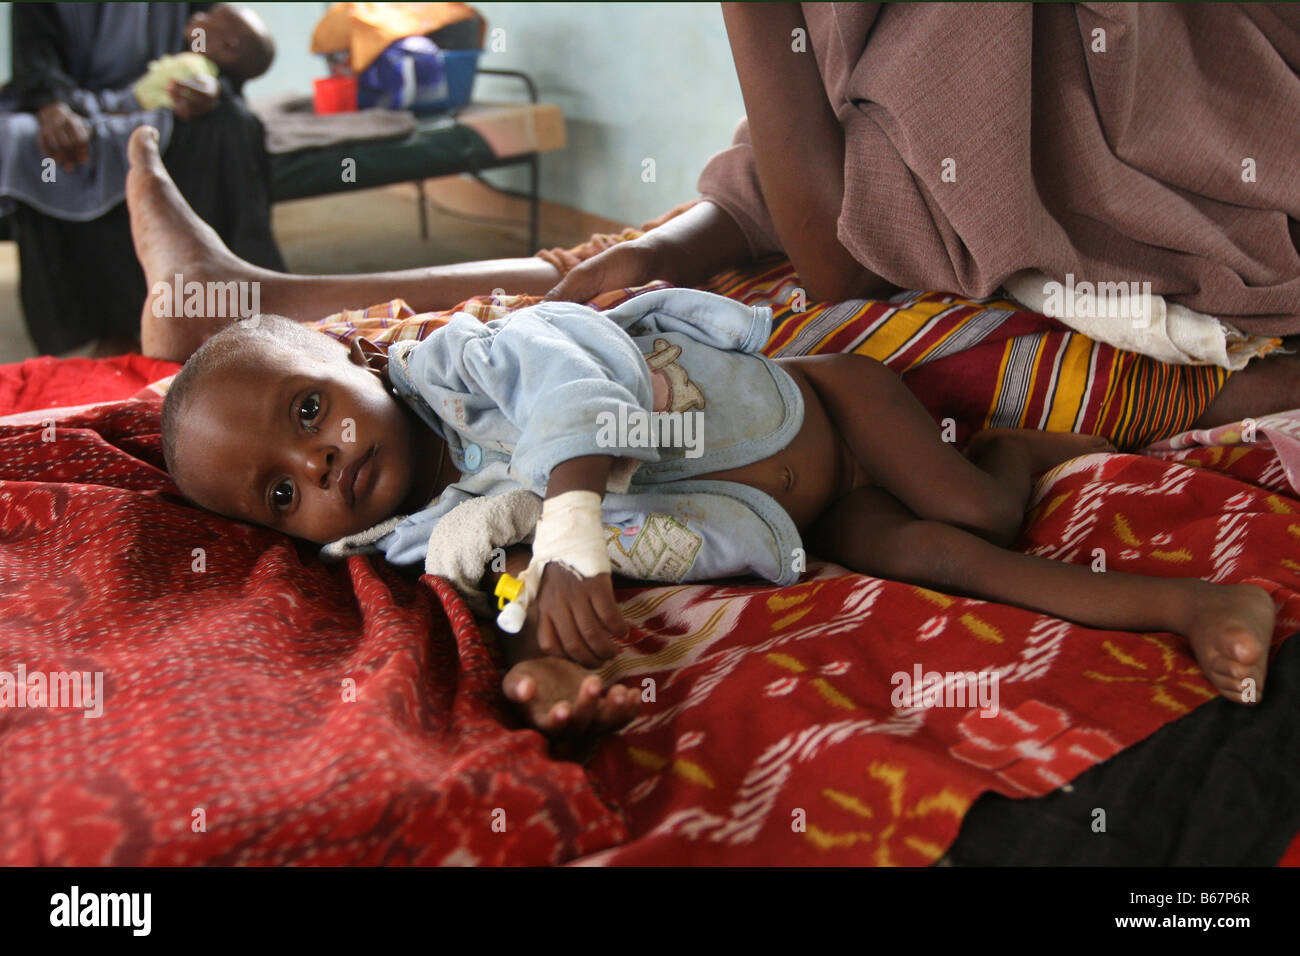 Undernourished somalian refugee boy in a hospital in refugee camp in Dadaab, at the border of Somalia and Kenya - Stock Image